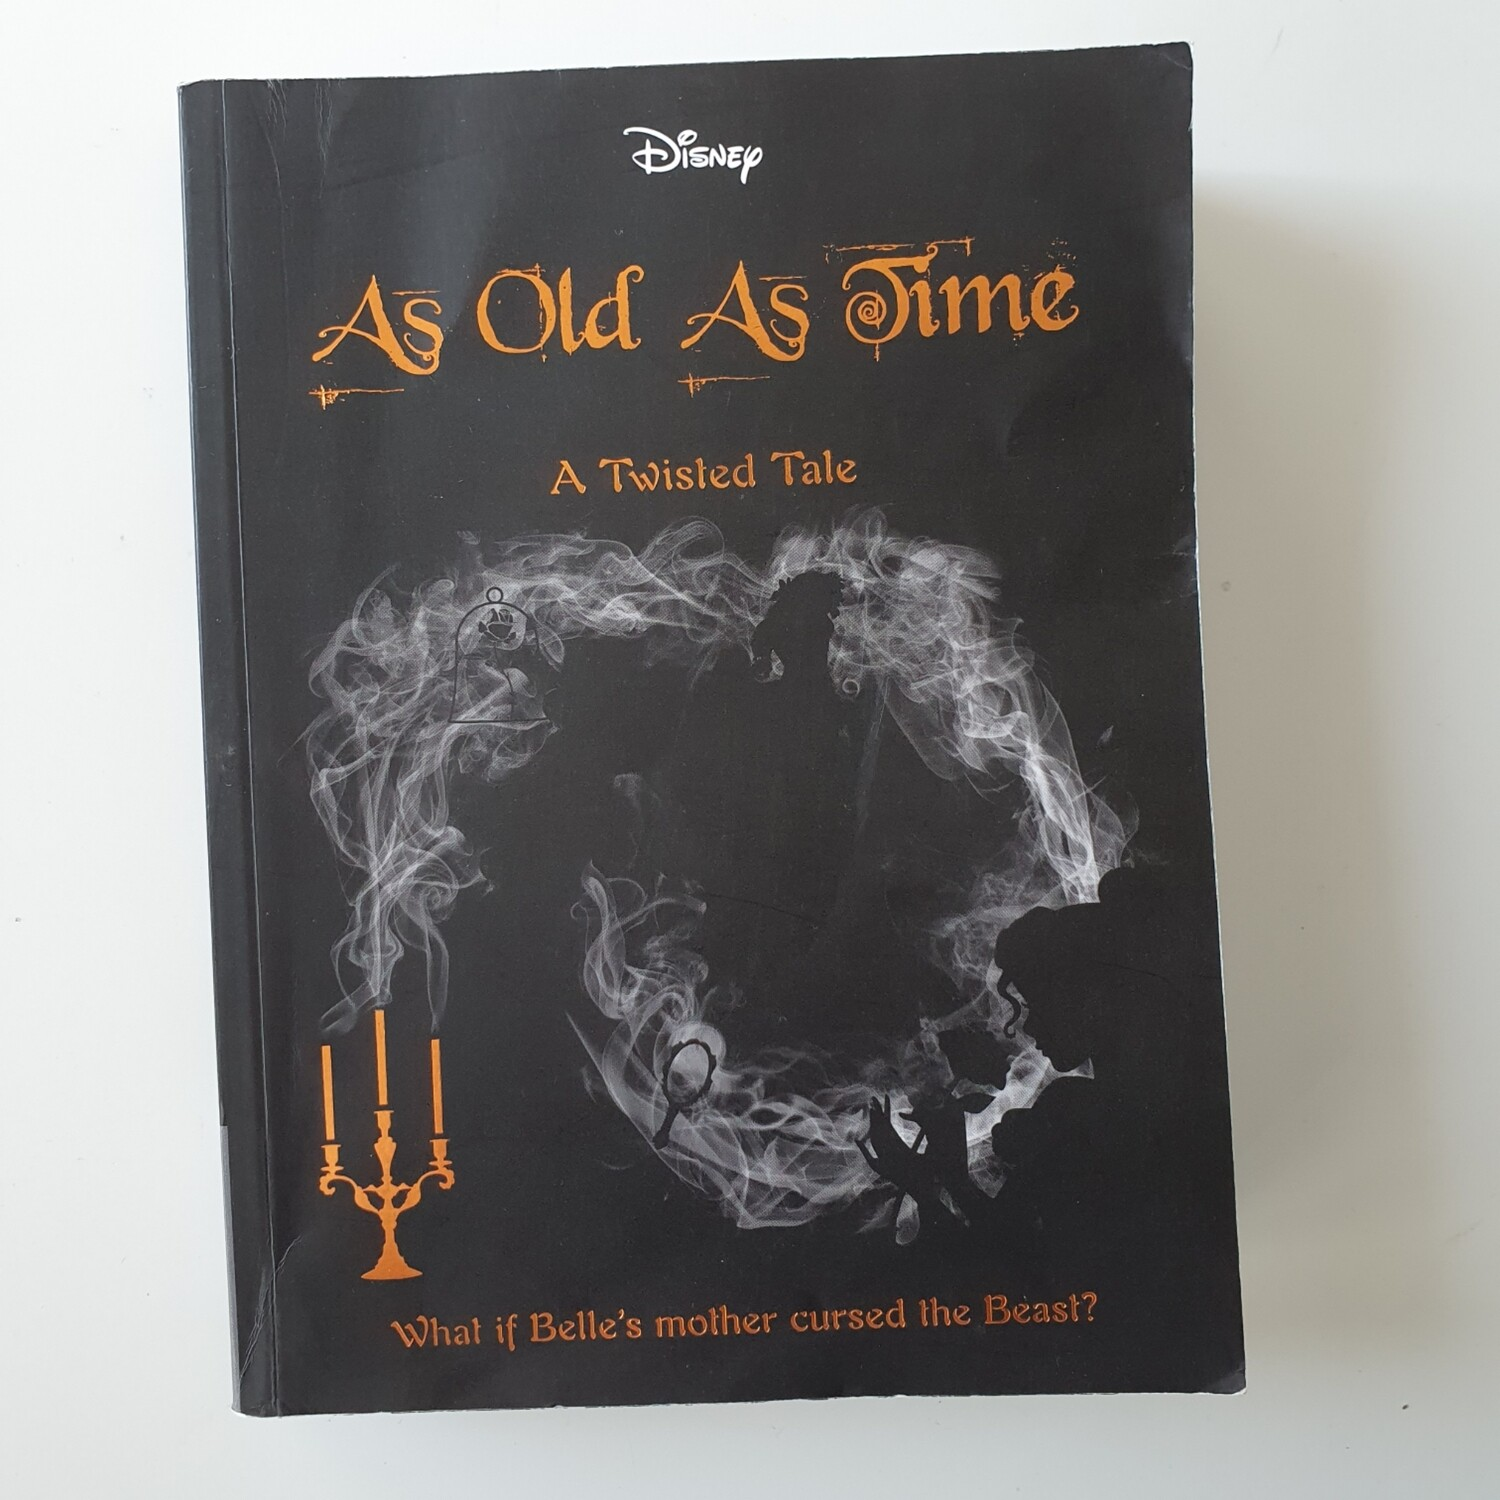 Disney Twisted Tale - Tale as Old as Time Notebook - made from a paperback book